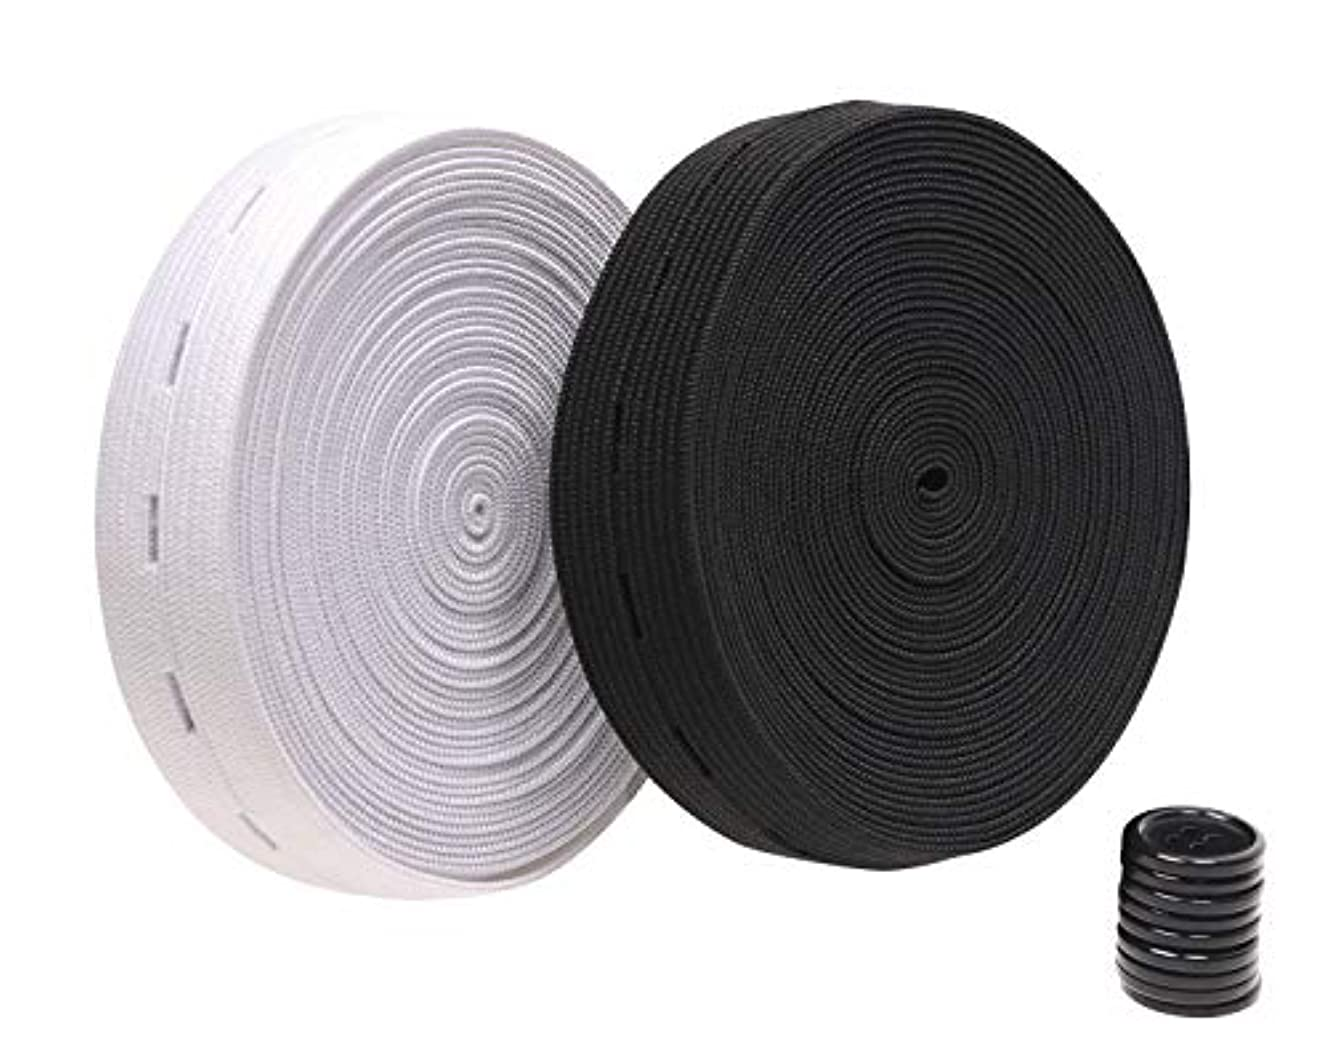 Penta Angel 2 Colors Elastic Sewing Bands 11 Yards 1 Inch Flatback Black and White Sewing Bands Spool with Buttonhole, Knit Stretch Cord Belt with 10Pcs 18mm Black Resin Button